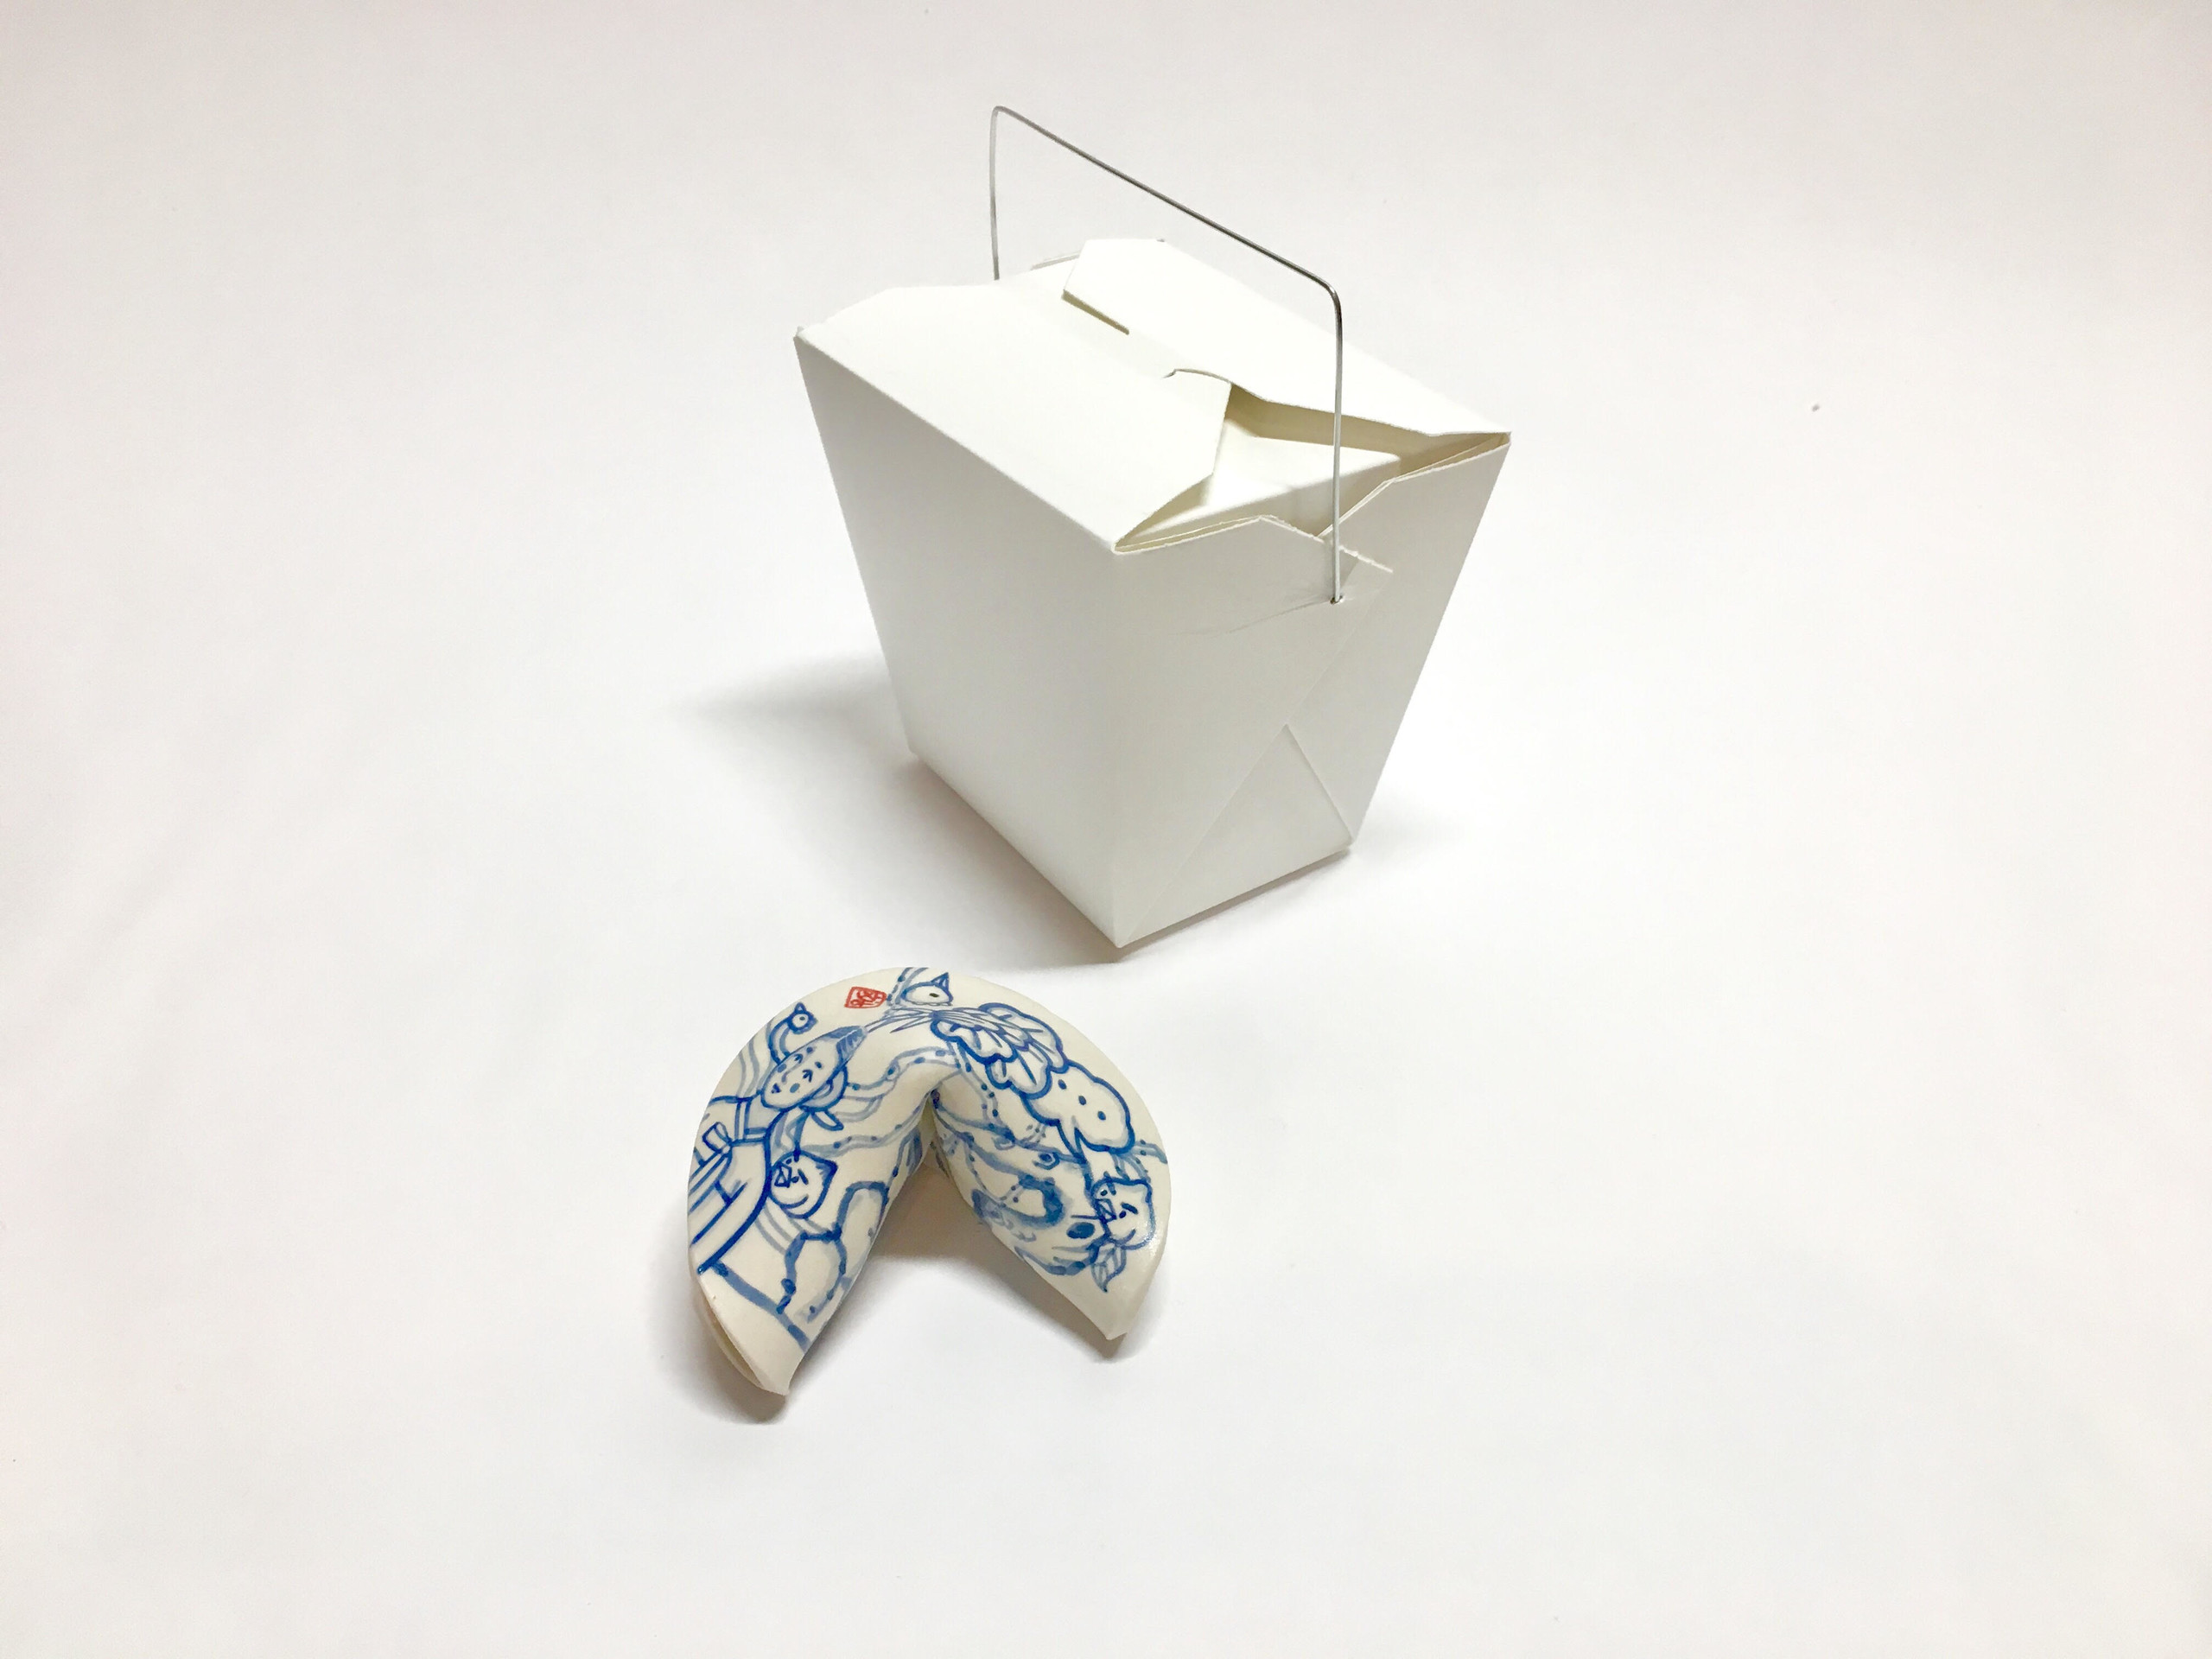 A small blue and white painted porcelain fortune cookie next to a white takeout box